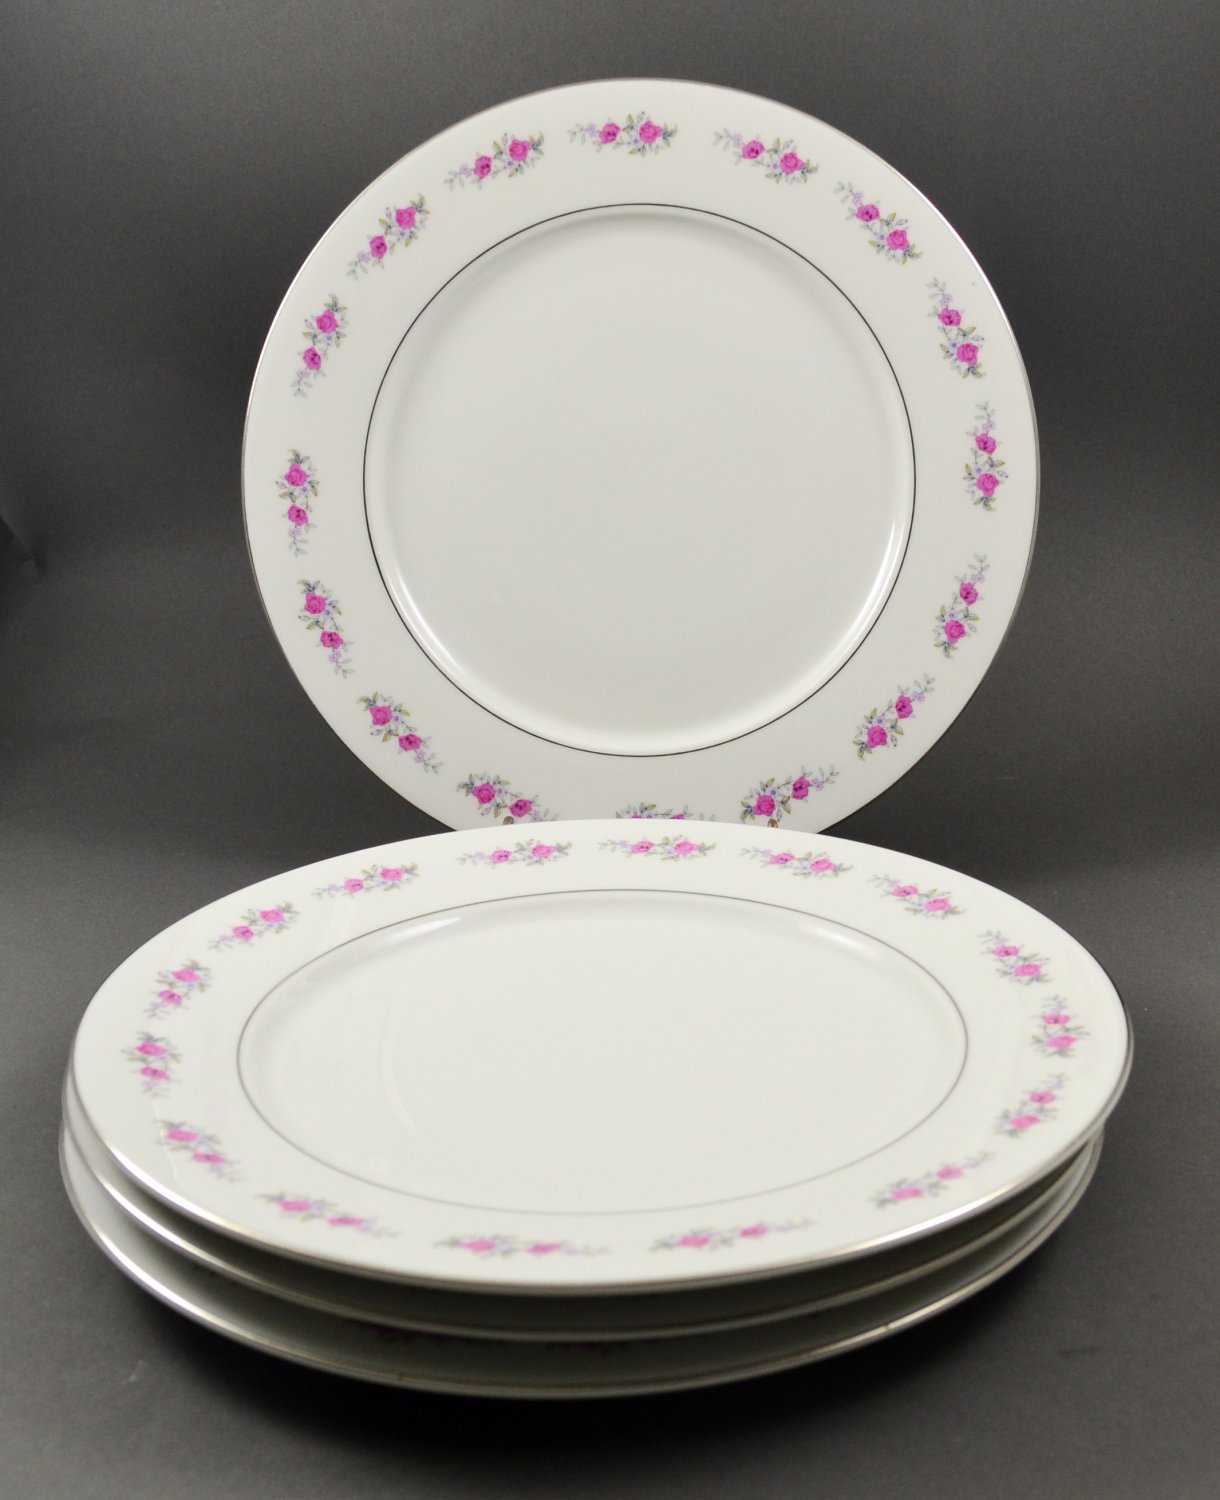 Set of 4 China Dinner Plates w/ Pink Floral on White with Platinum Trim